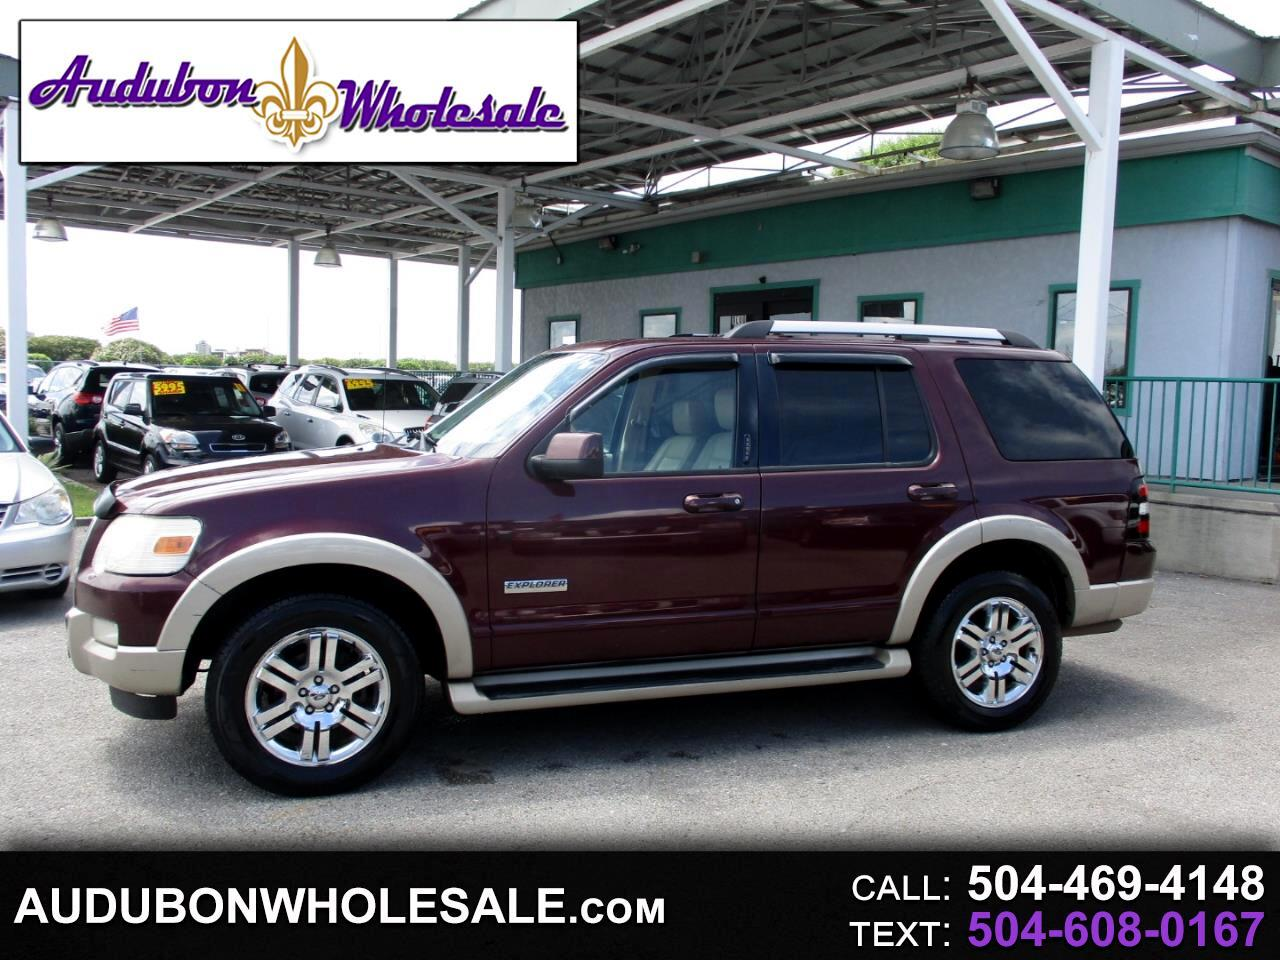 2007 Ford Explorer Eddie Bauer >> Used 2007 Ford Explorer Eddie Bauer 4 0l 2wd For Sale In